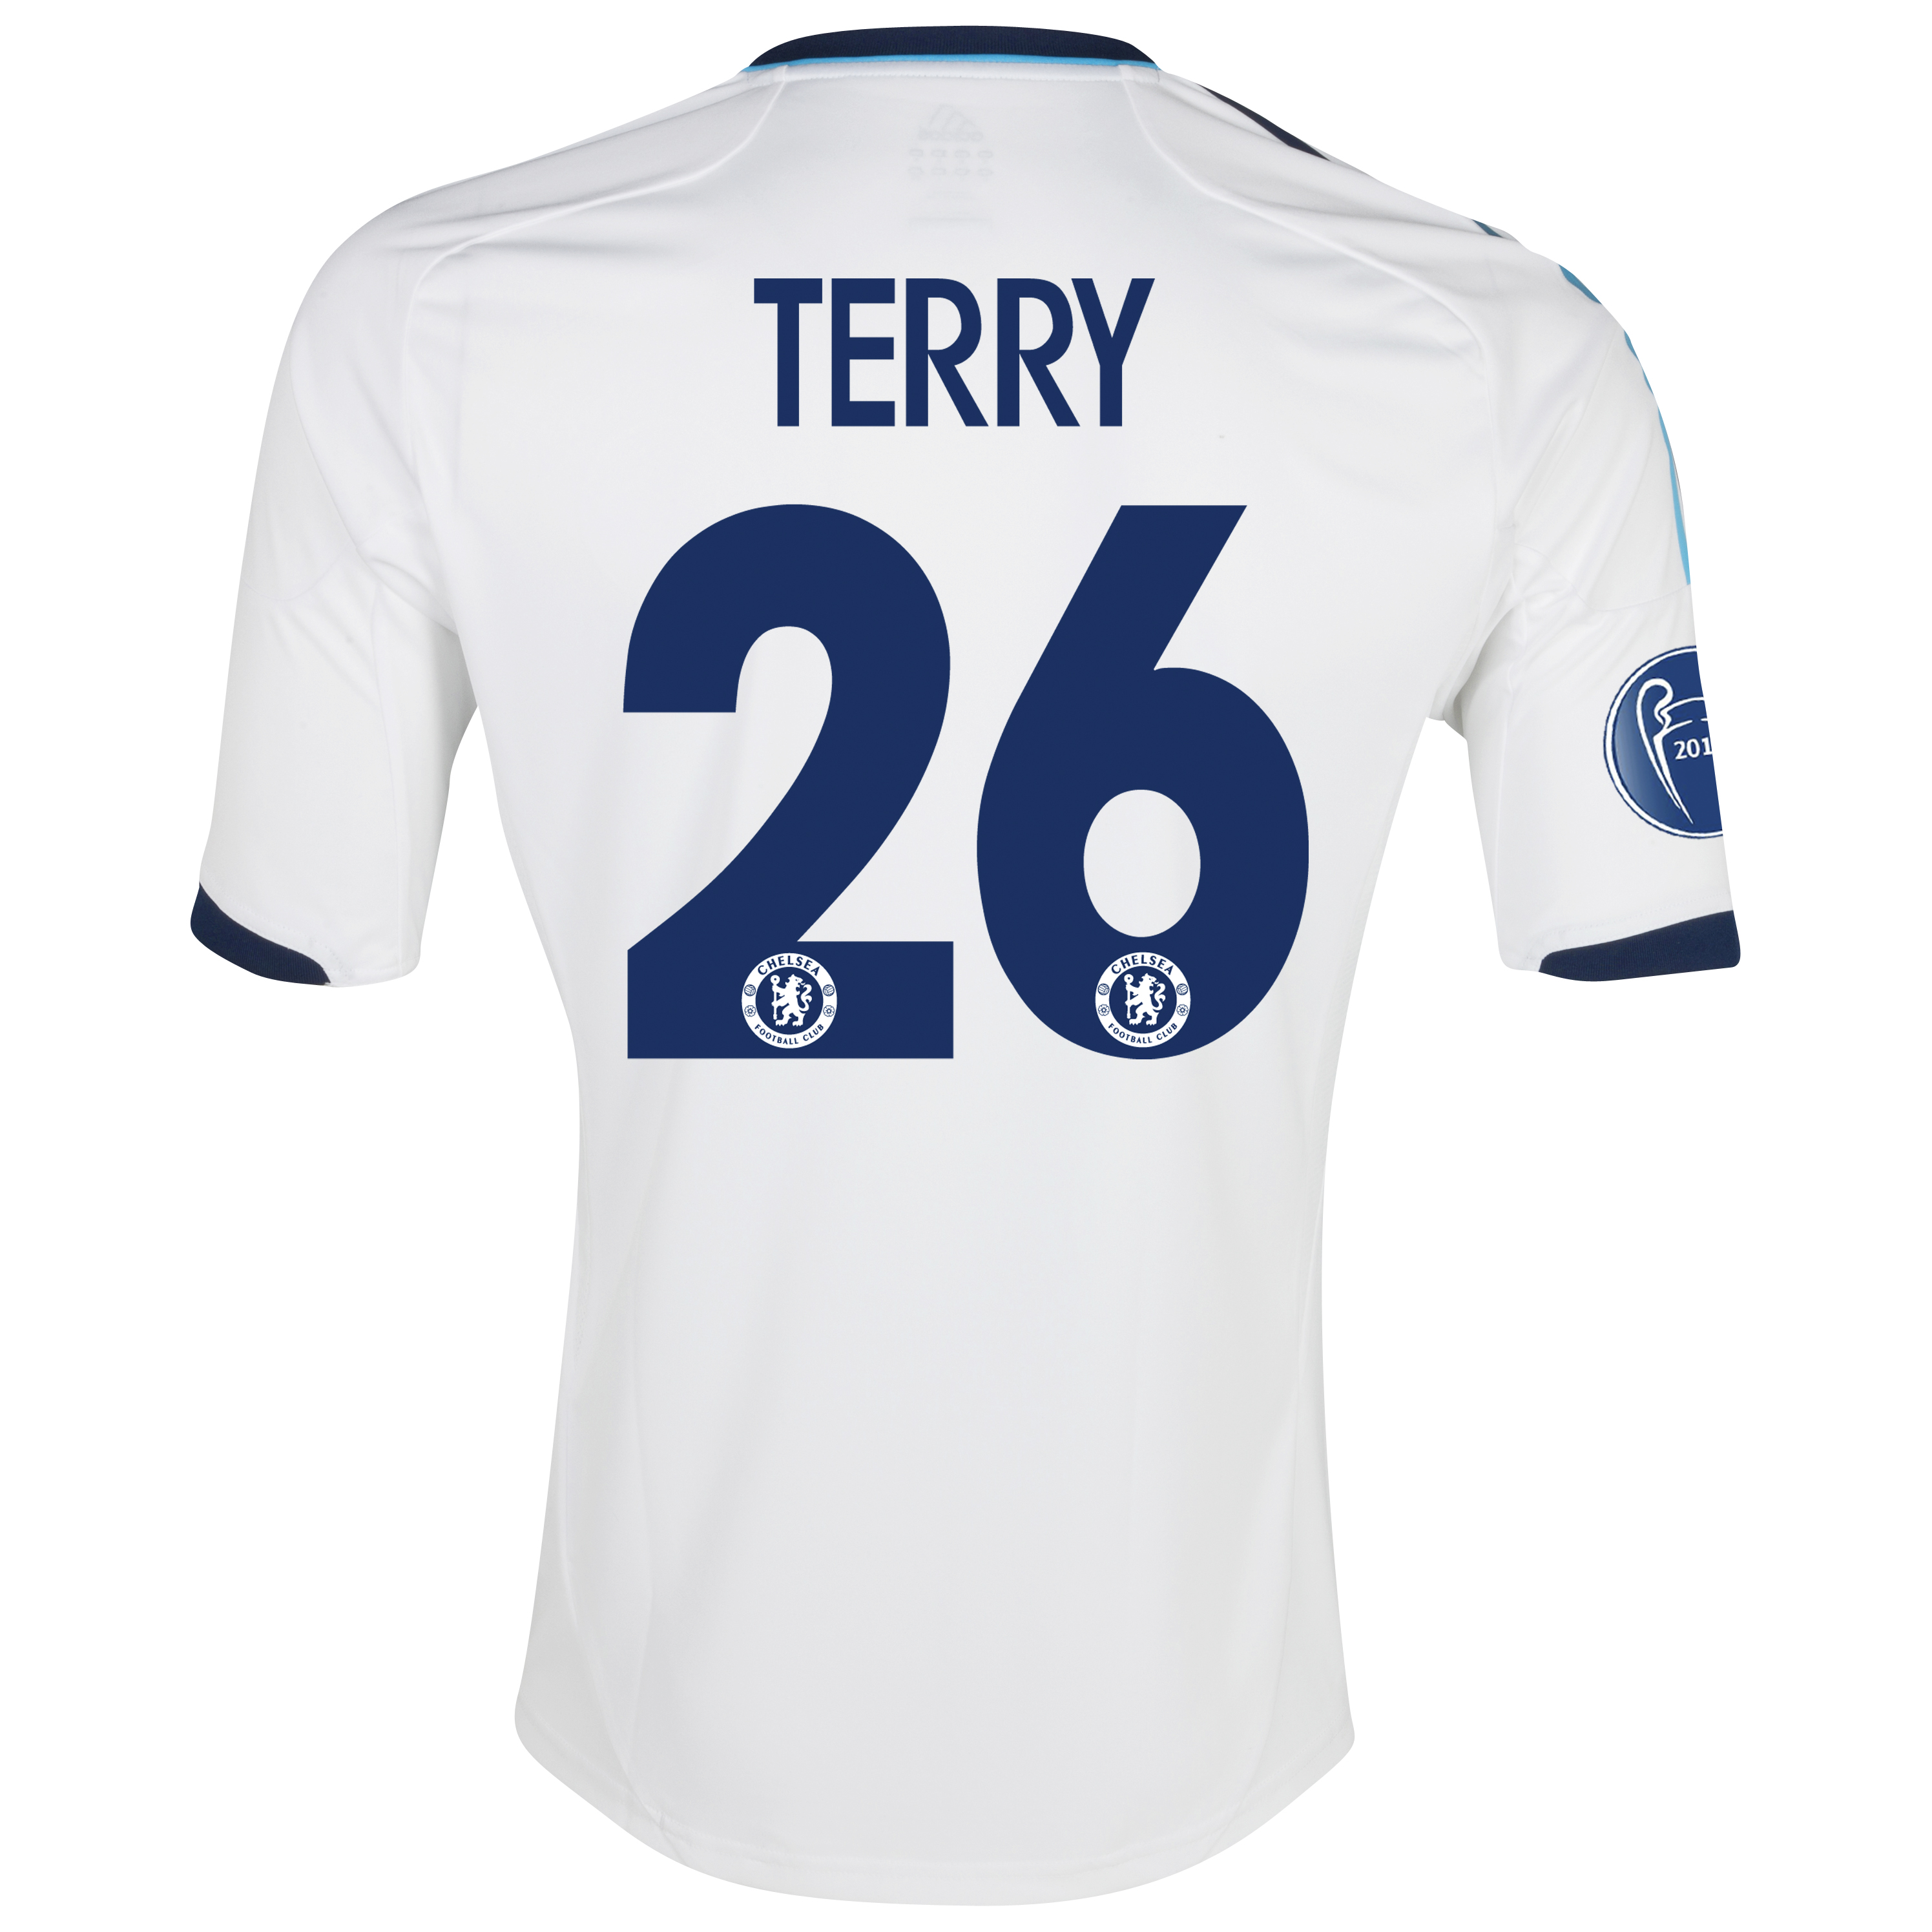 Chelsea UEFA Champions League Away Shirt 2012/13 - Youths with Terry 26 printing